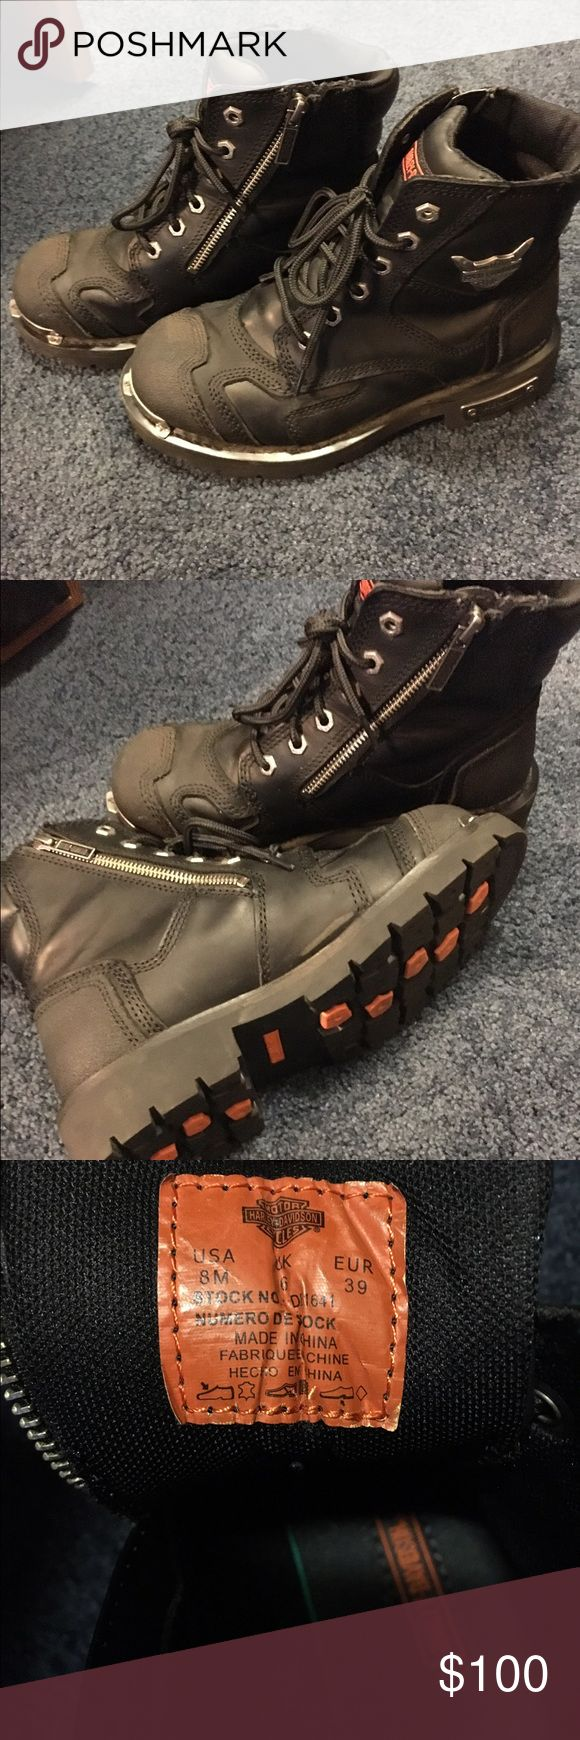 Harley Boots Women's Harley Boots size 8 only worn twice. Just to big for me. I'm great shape! Harley-Davidson Shoes Ankle Boots & Booties